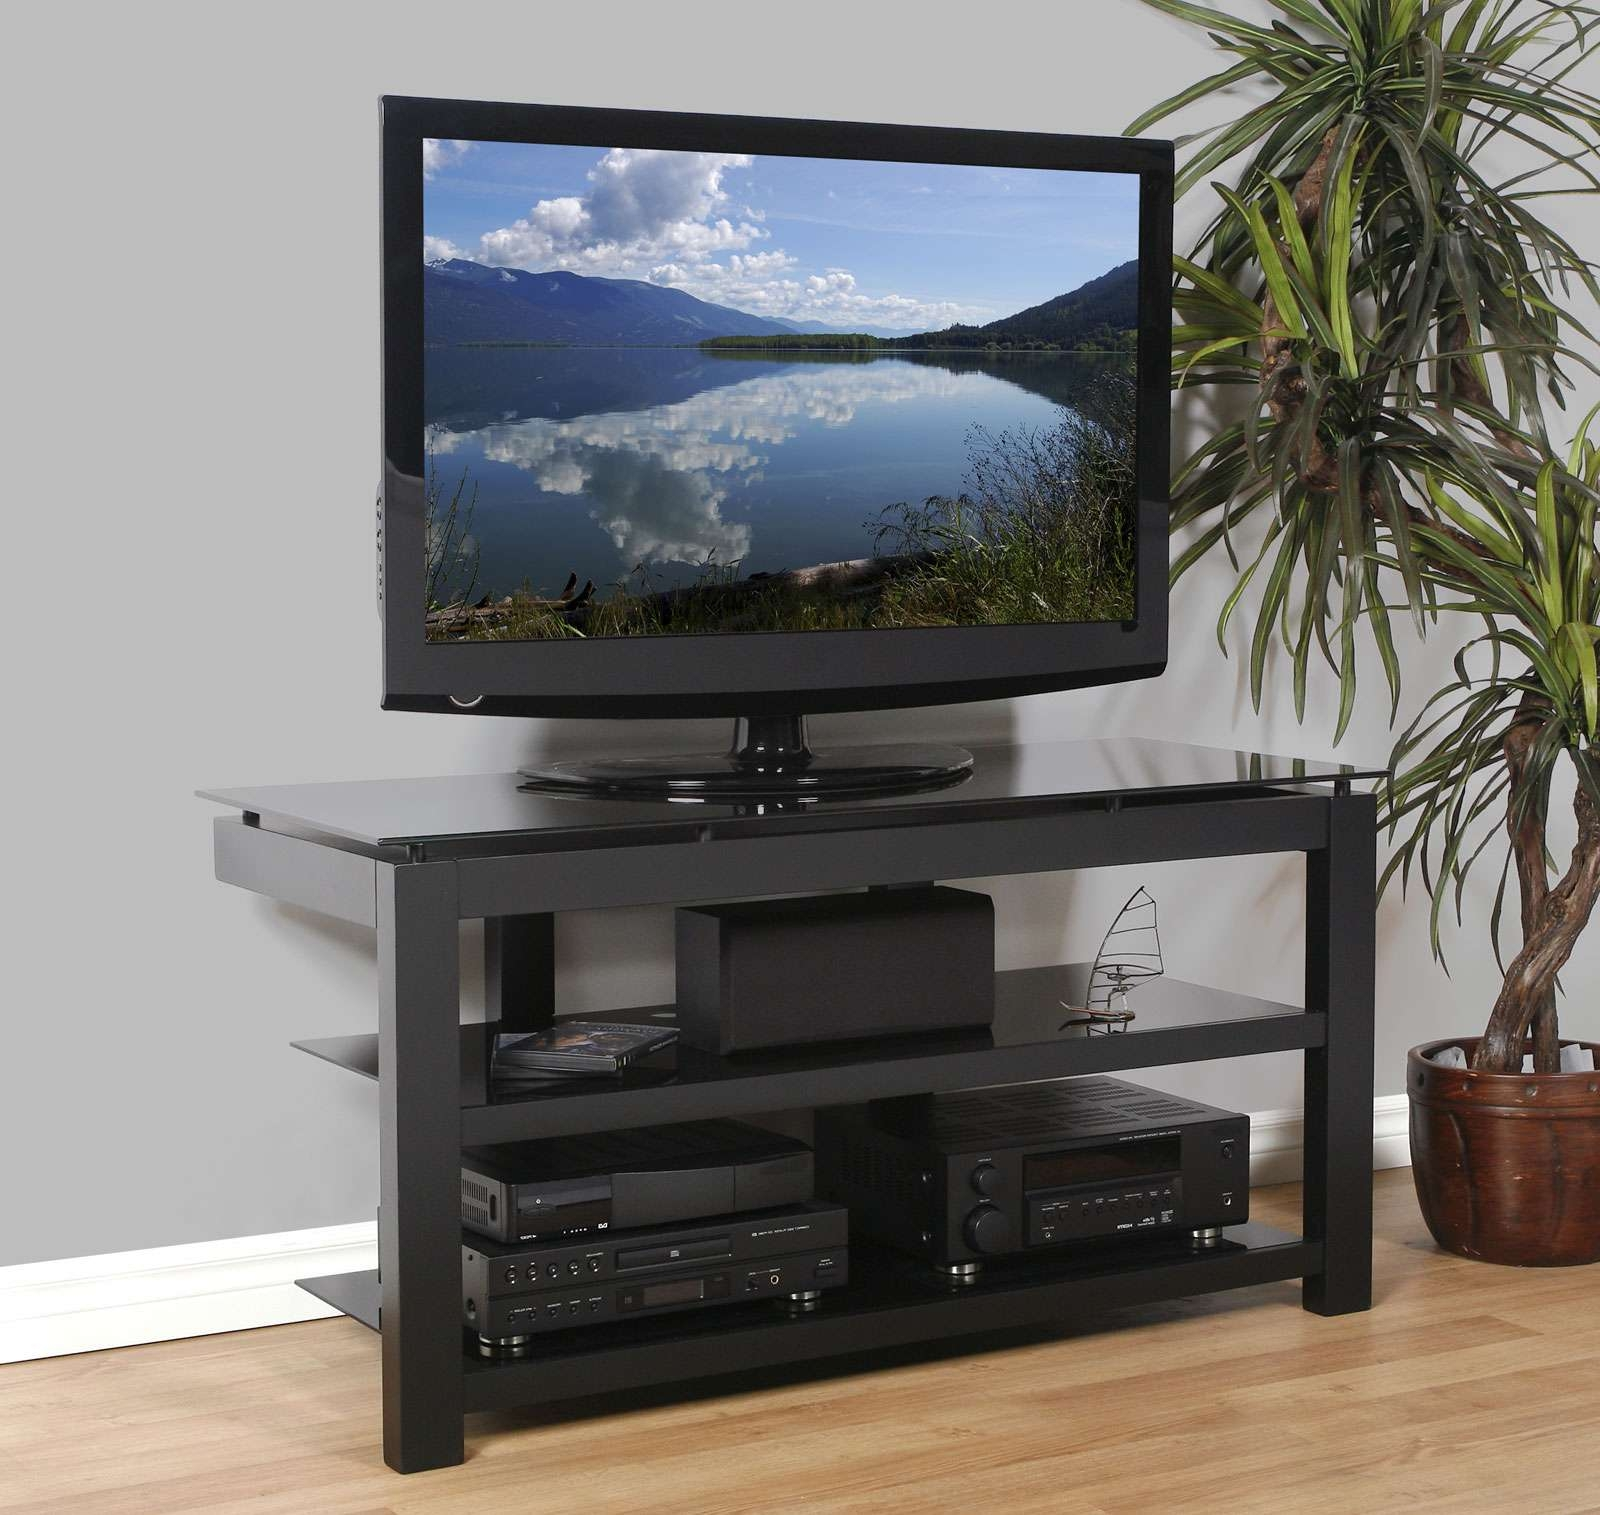 Tv Stand : Corner Tv Stand For Inch Flat Screen Literarywondrous Inside 50 Inch Corner Tv Cabinets (View 15 of 20)